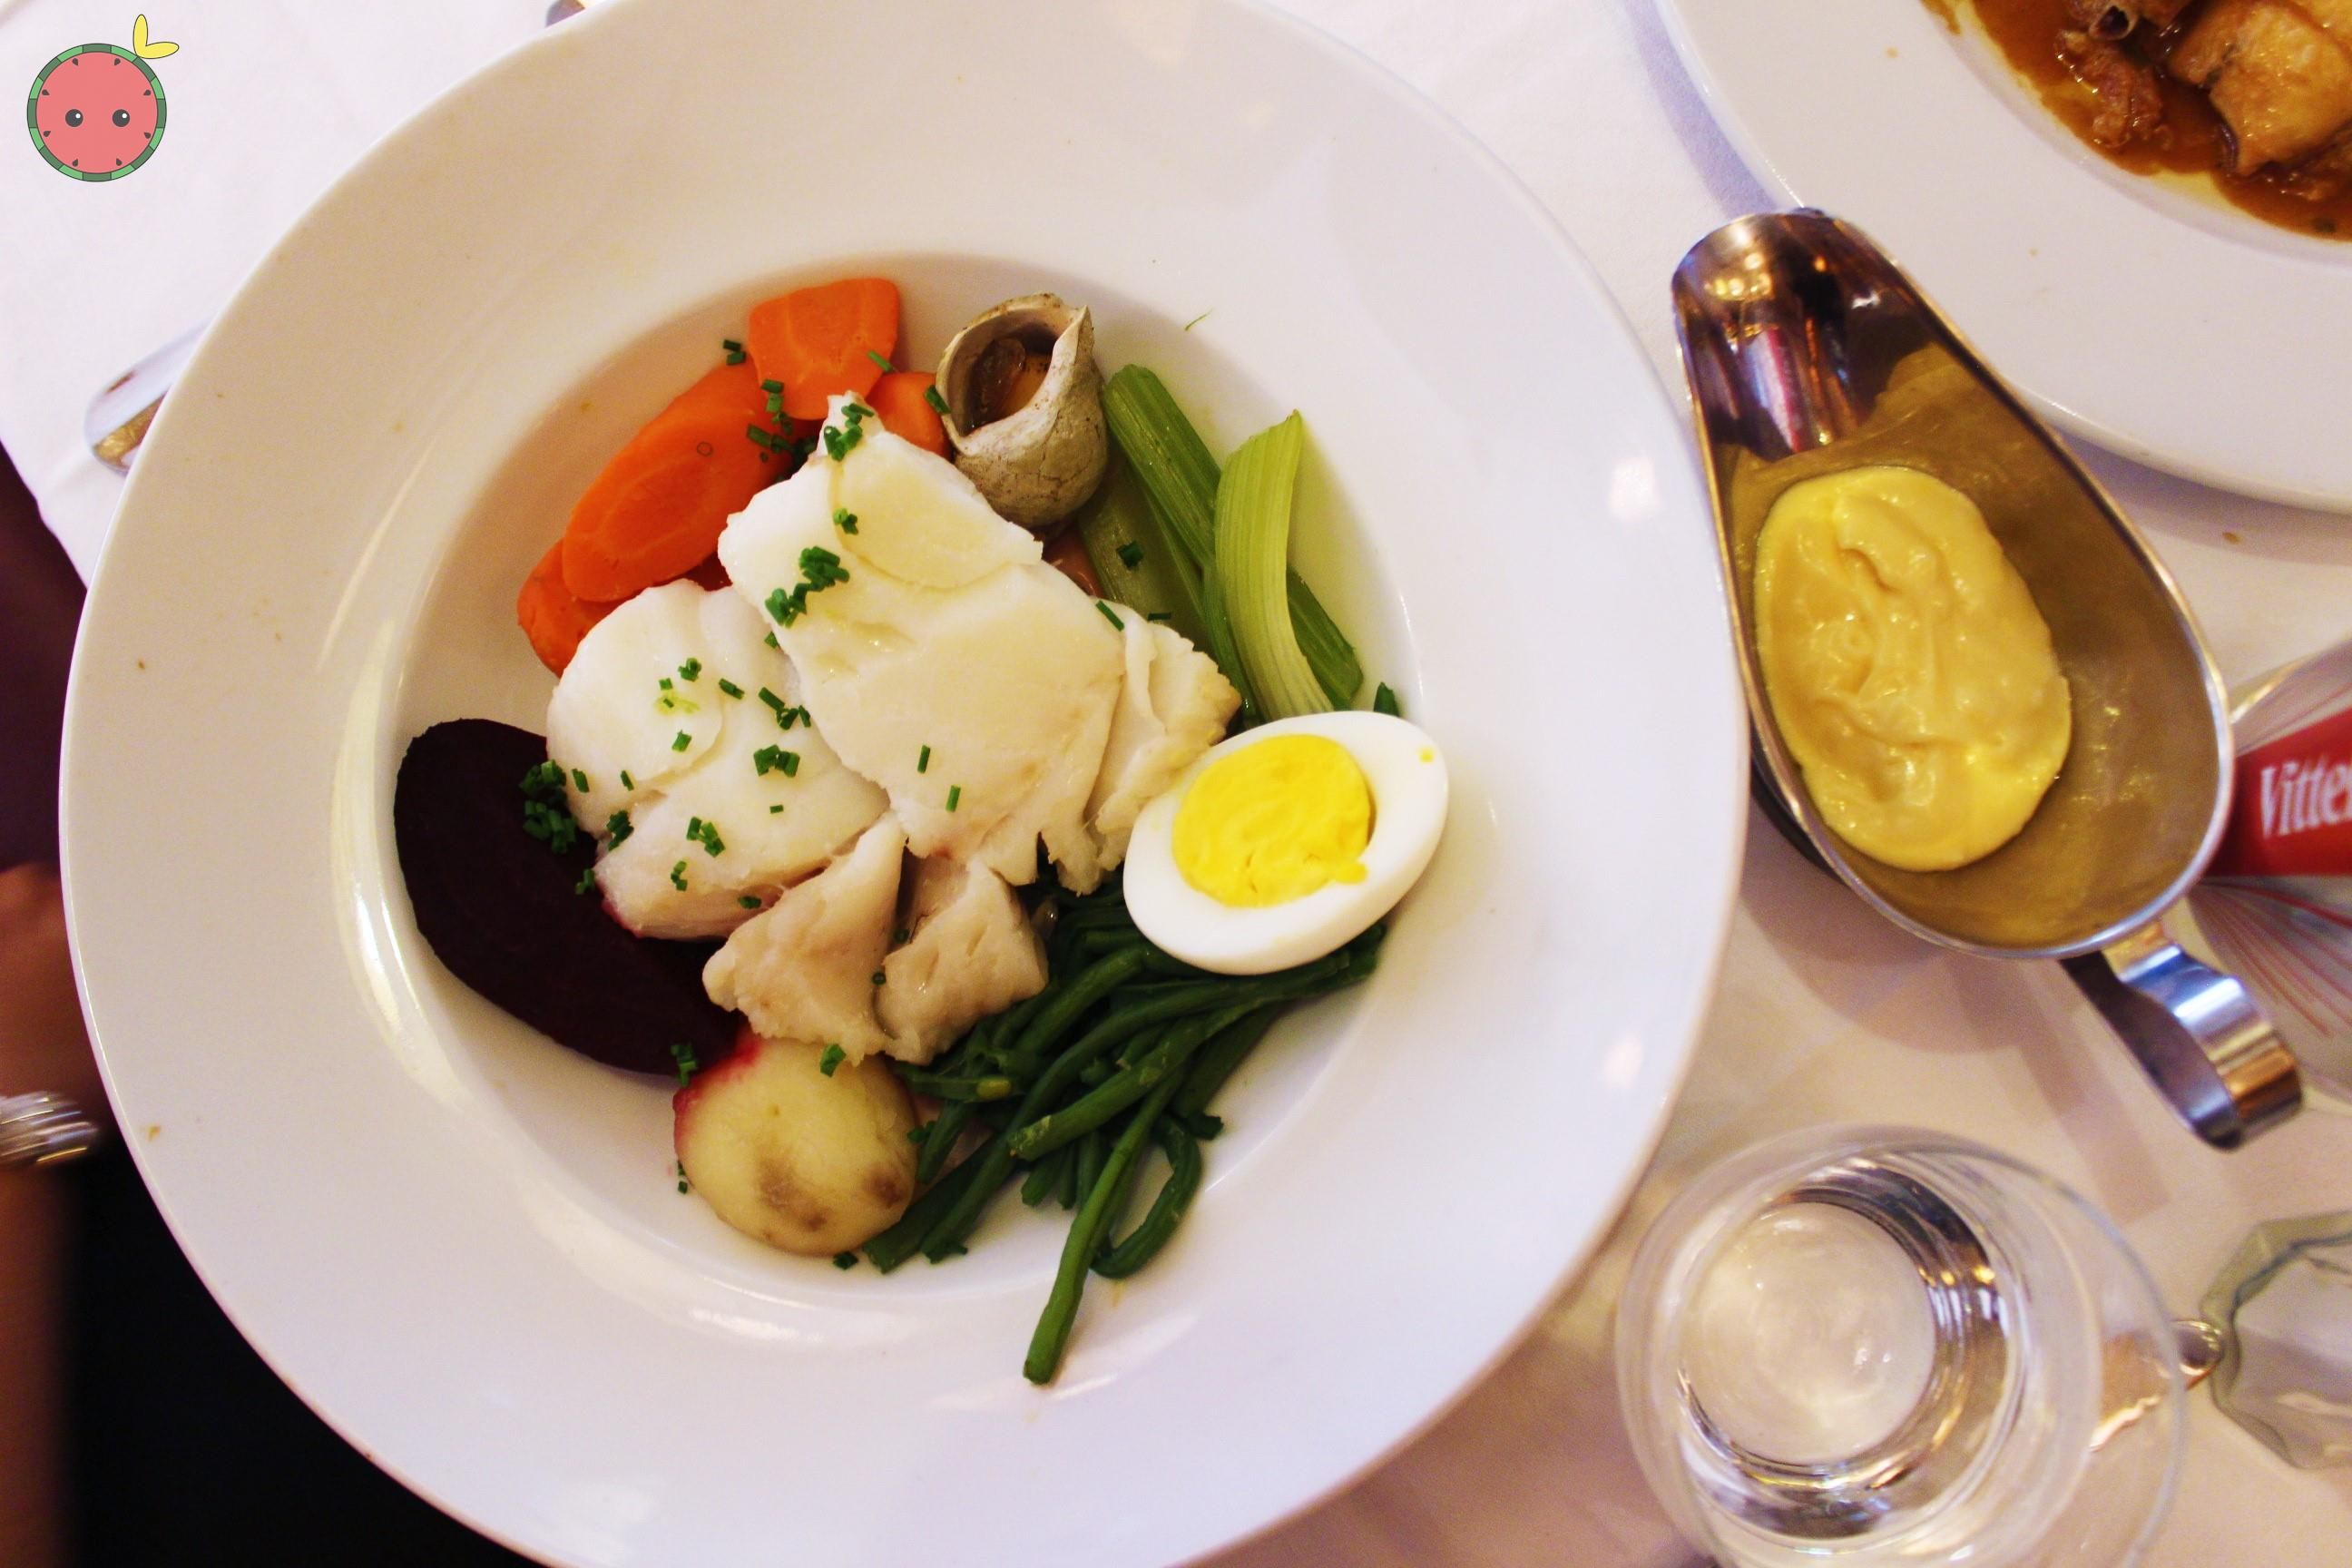 Steamed_wild_cod_with_vegetables_and_aïoli_2